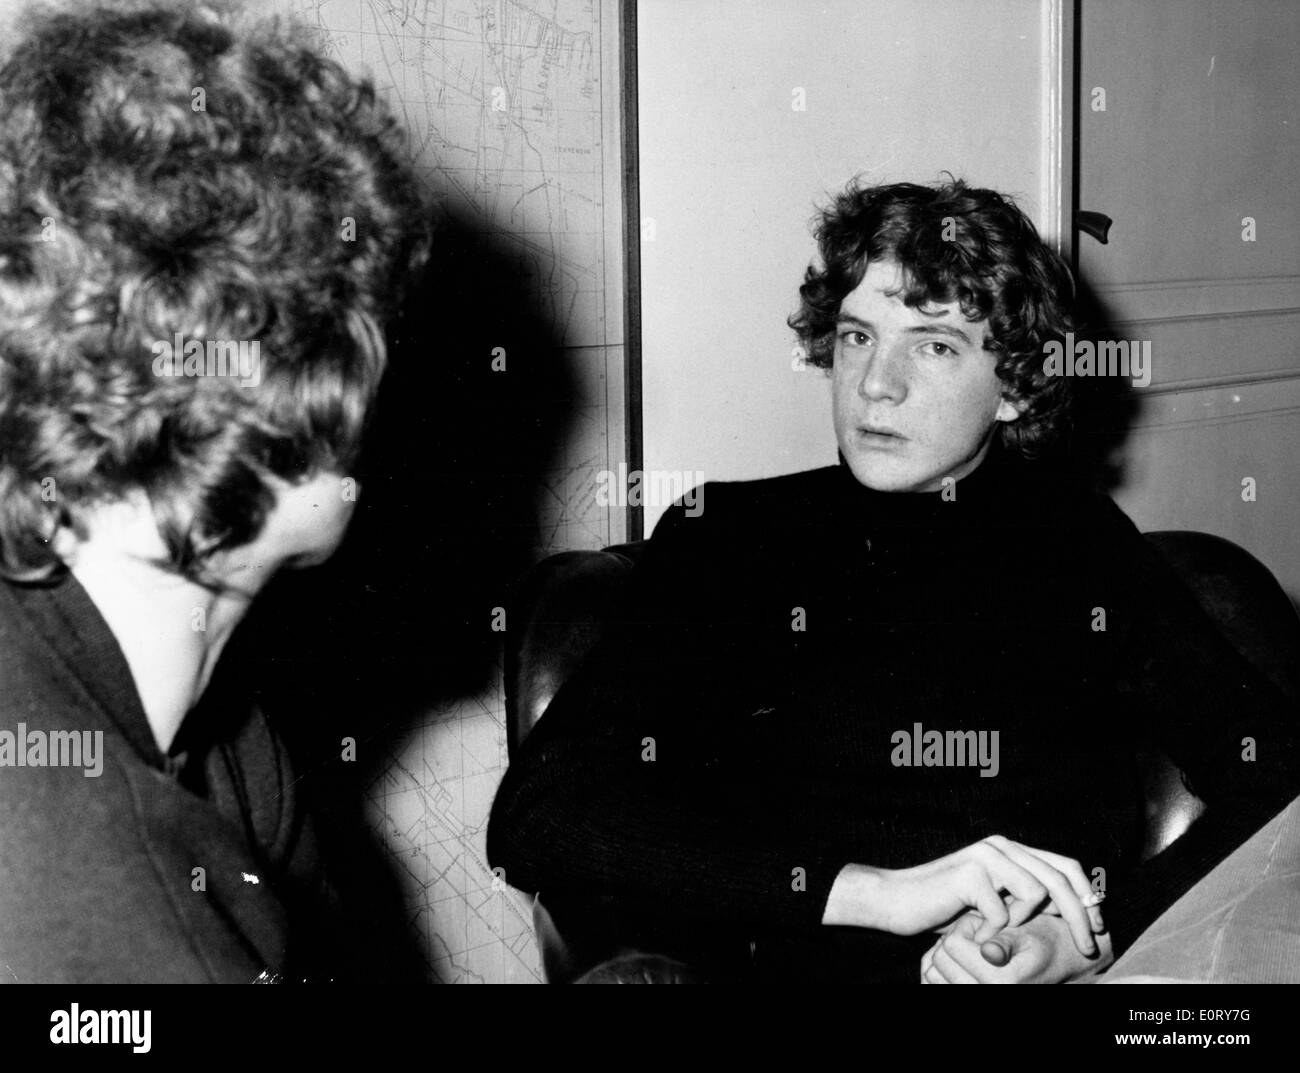 Philanthropist Paul Getty in an interview - Stock Image